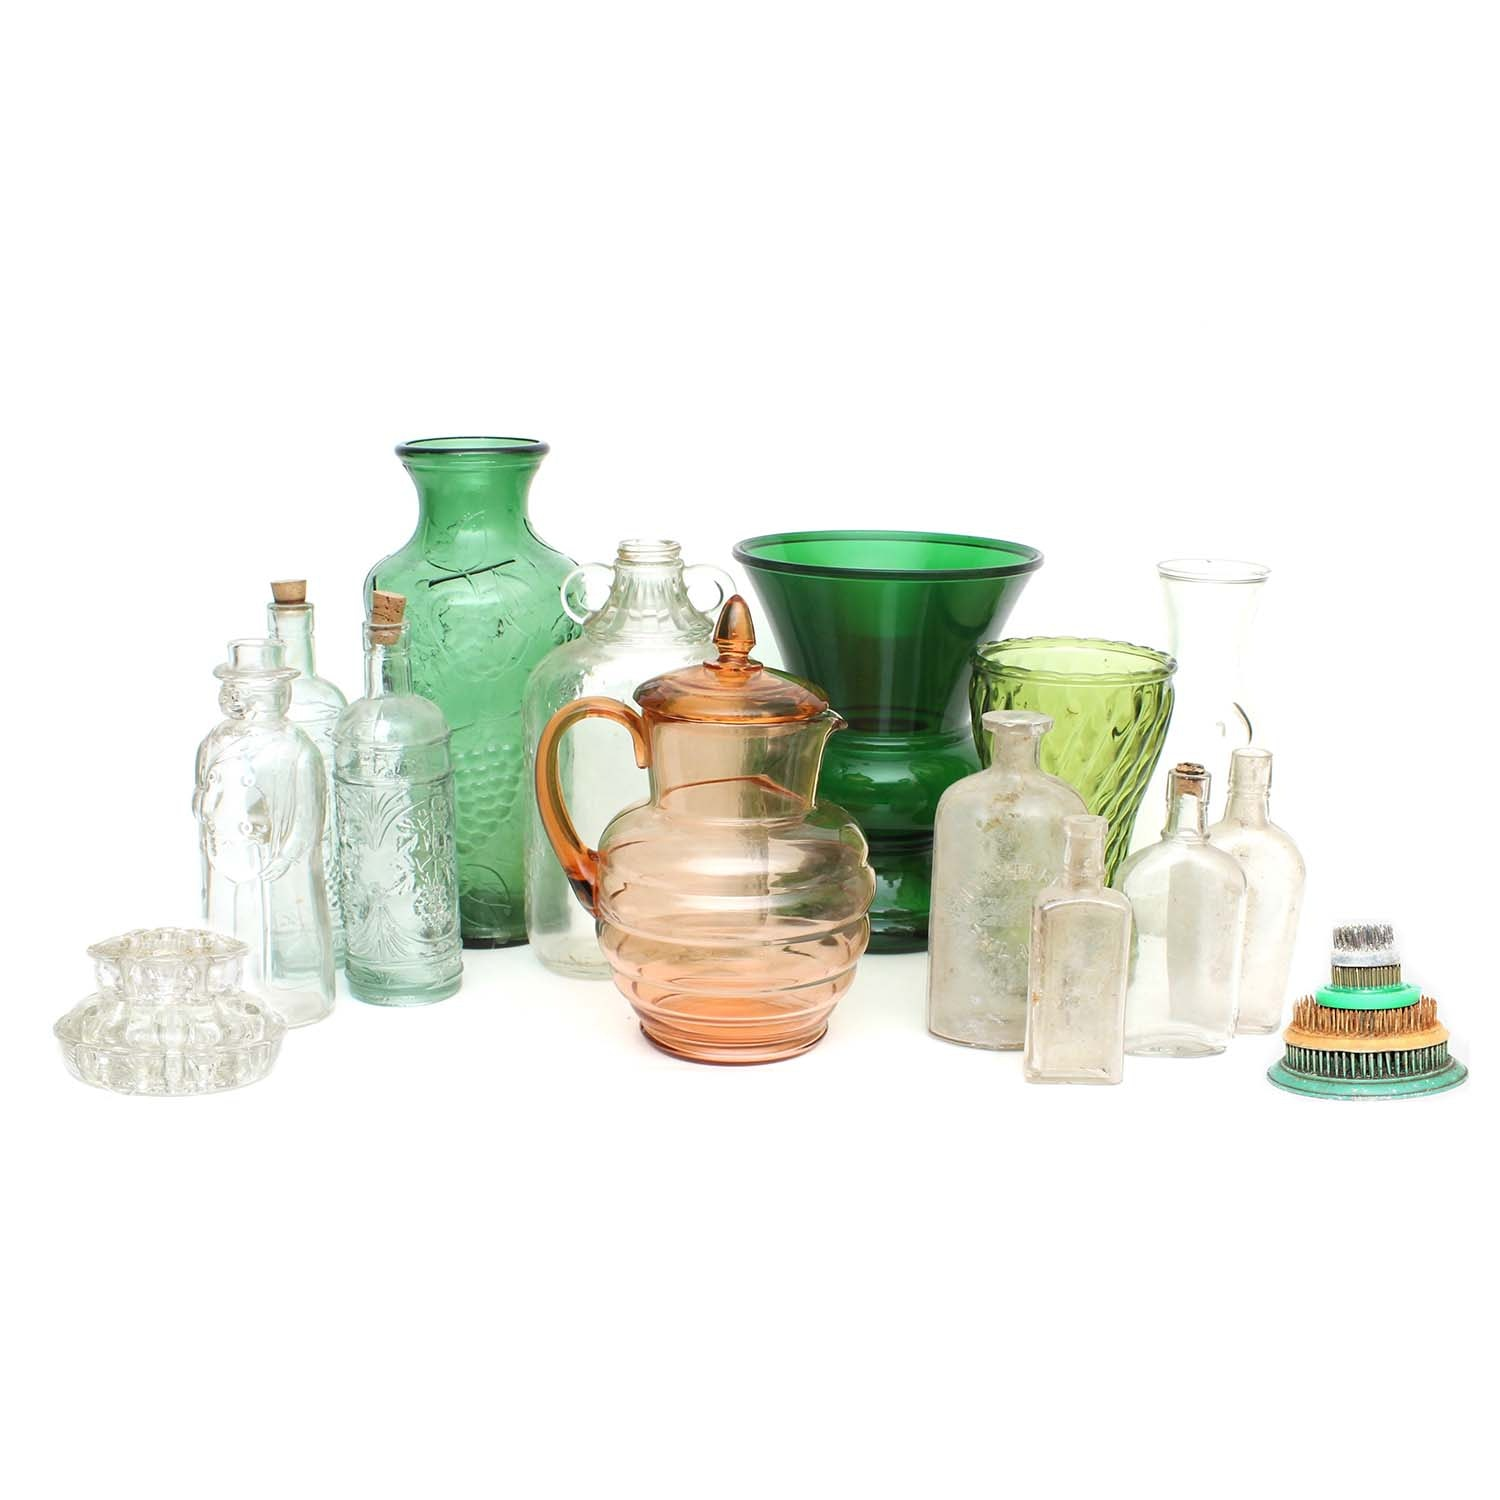 Vintage and Antique Apothecary Bottles, Colored Glass Vases, and Flower Frogs